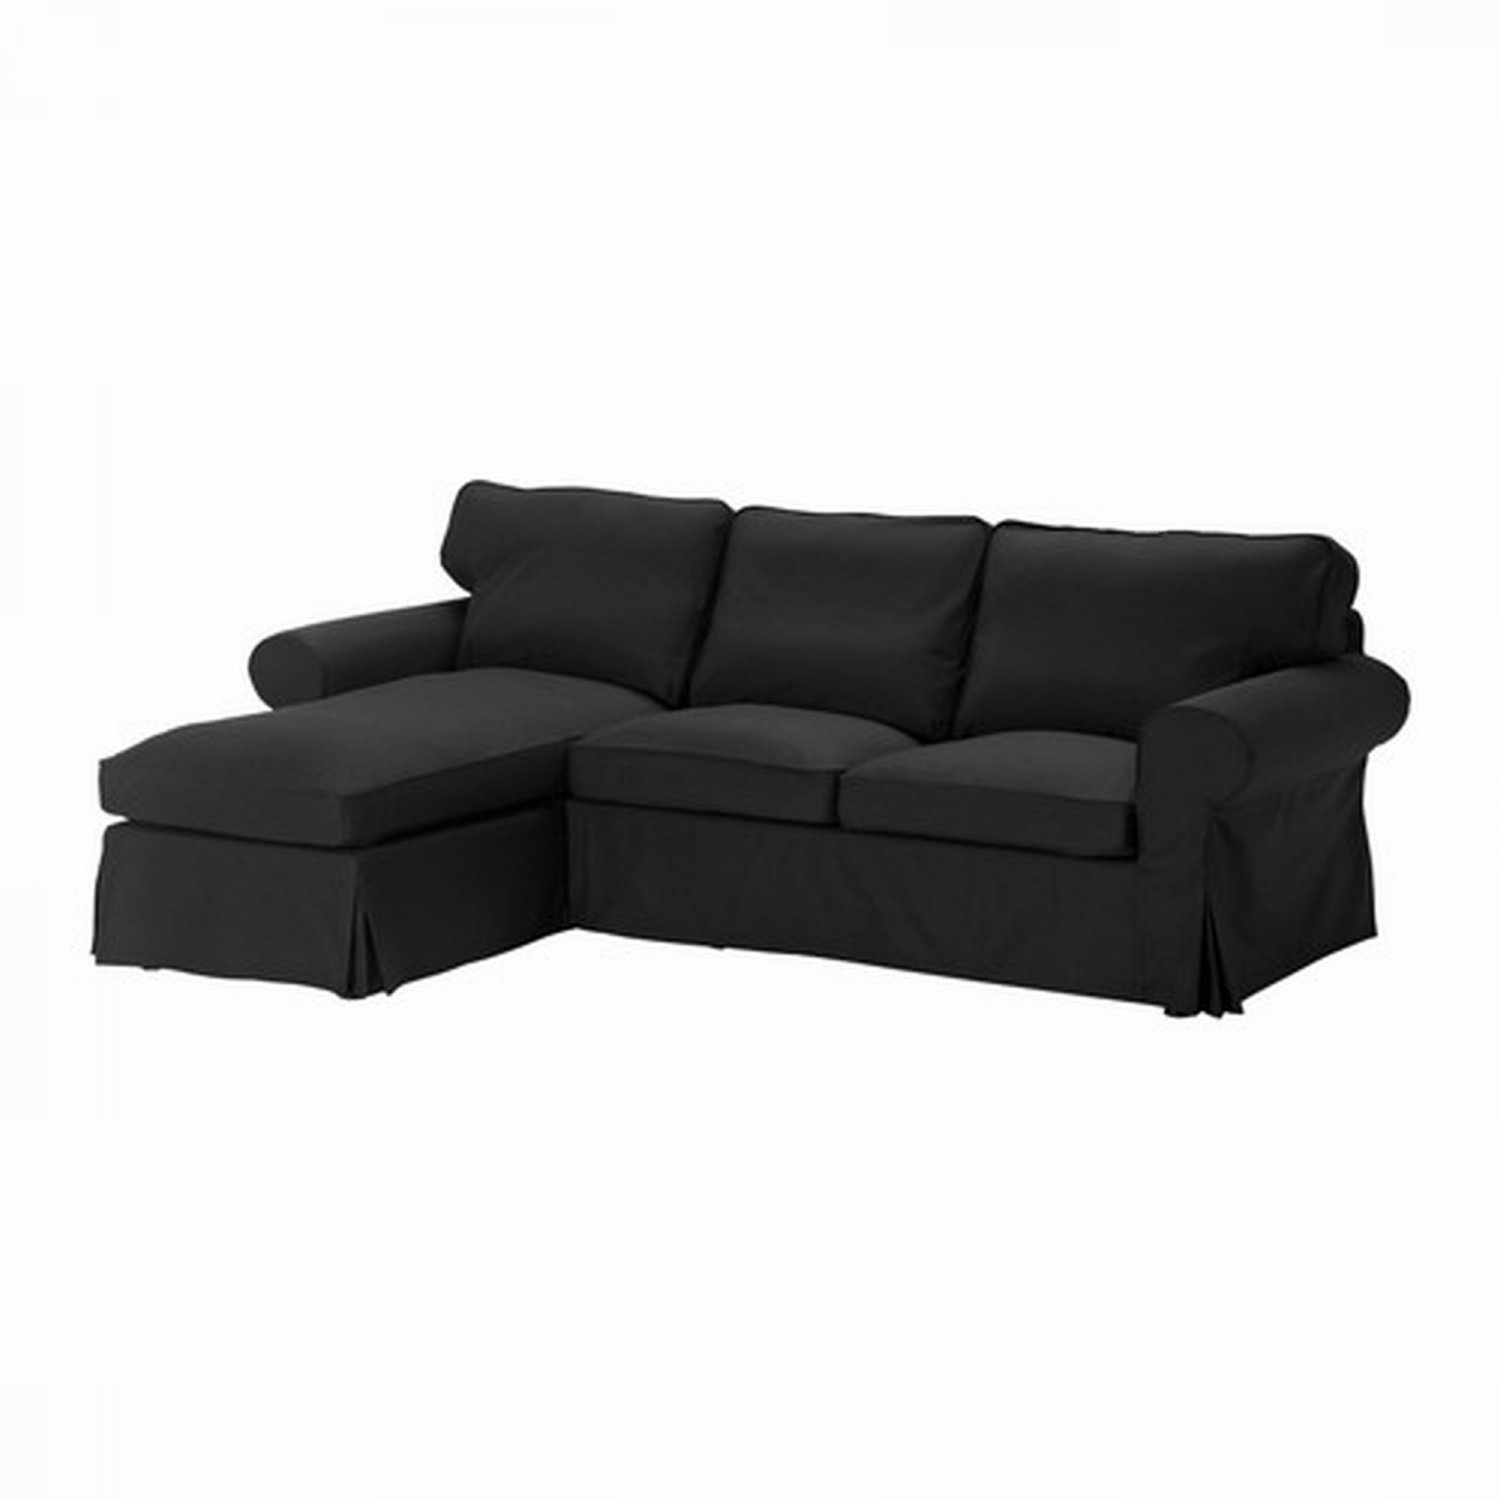 Ikea ektorp 2 seat loveseat sofa with chaise cover for 2 seater sofa with chaise